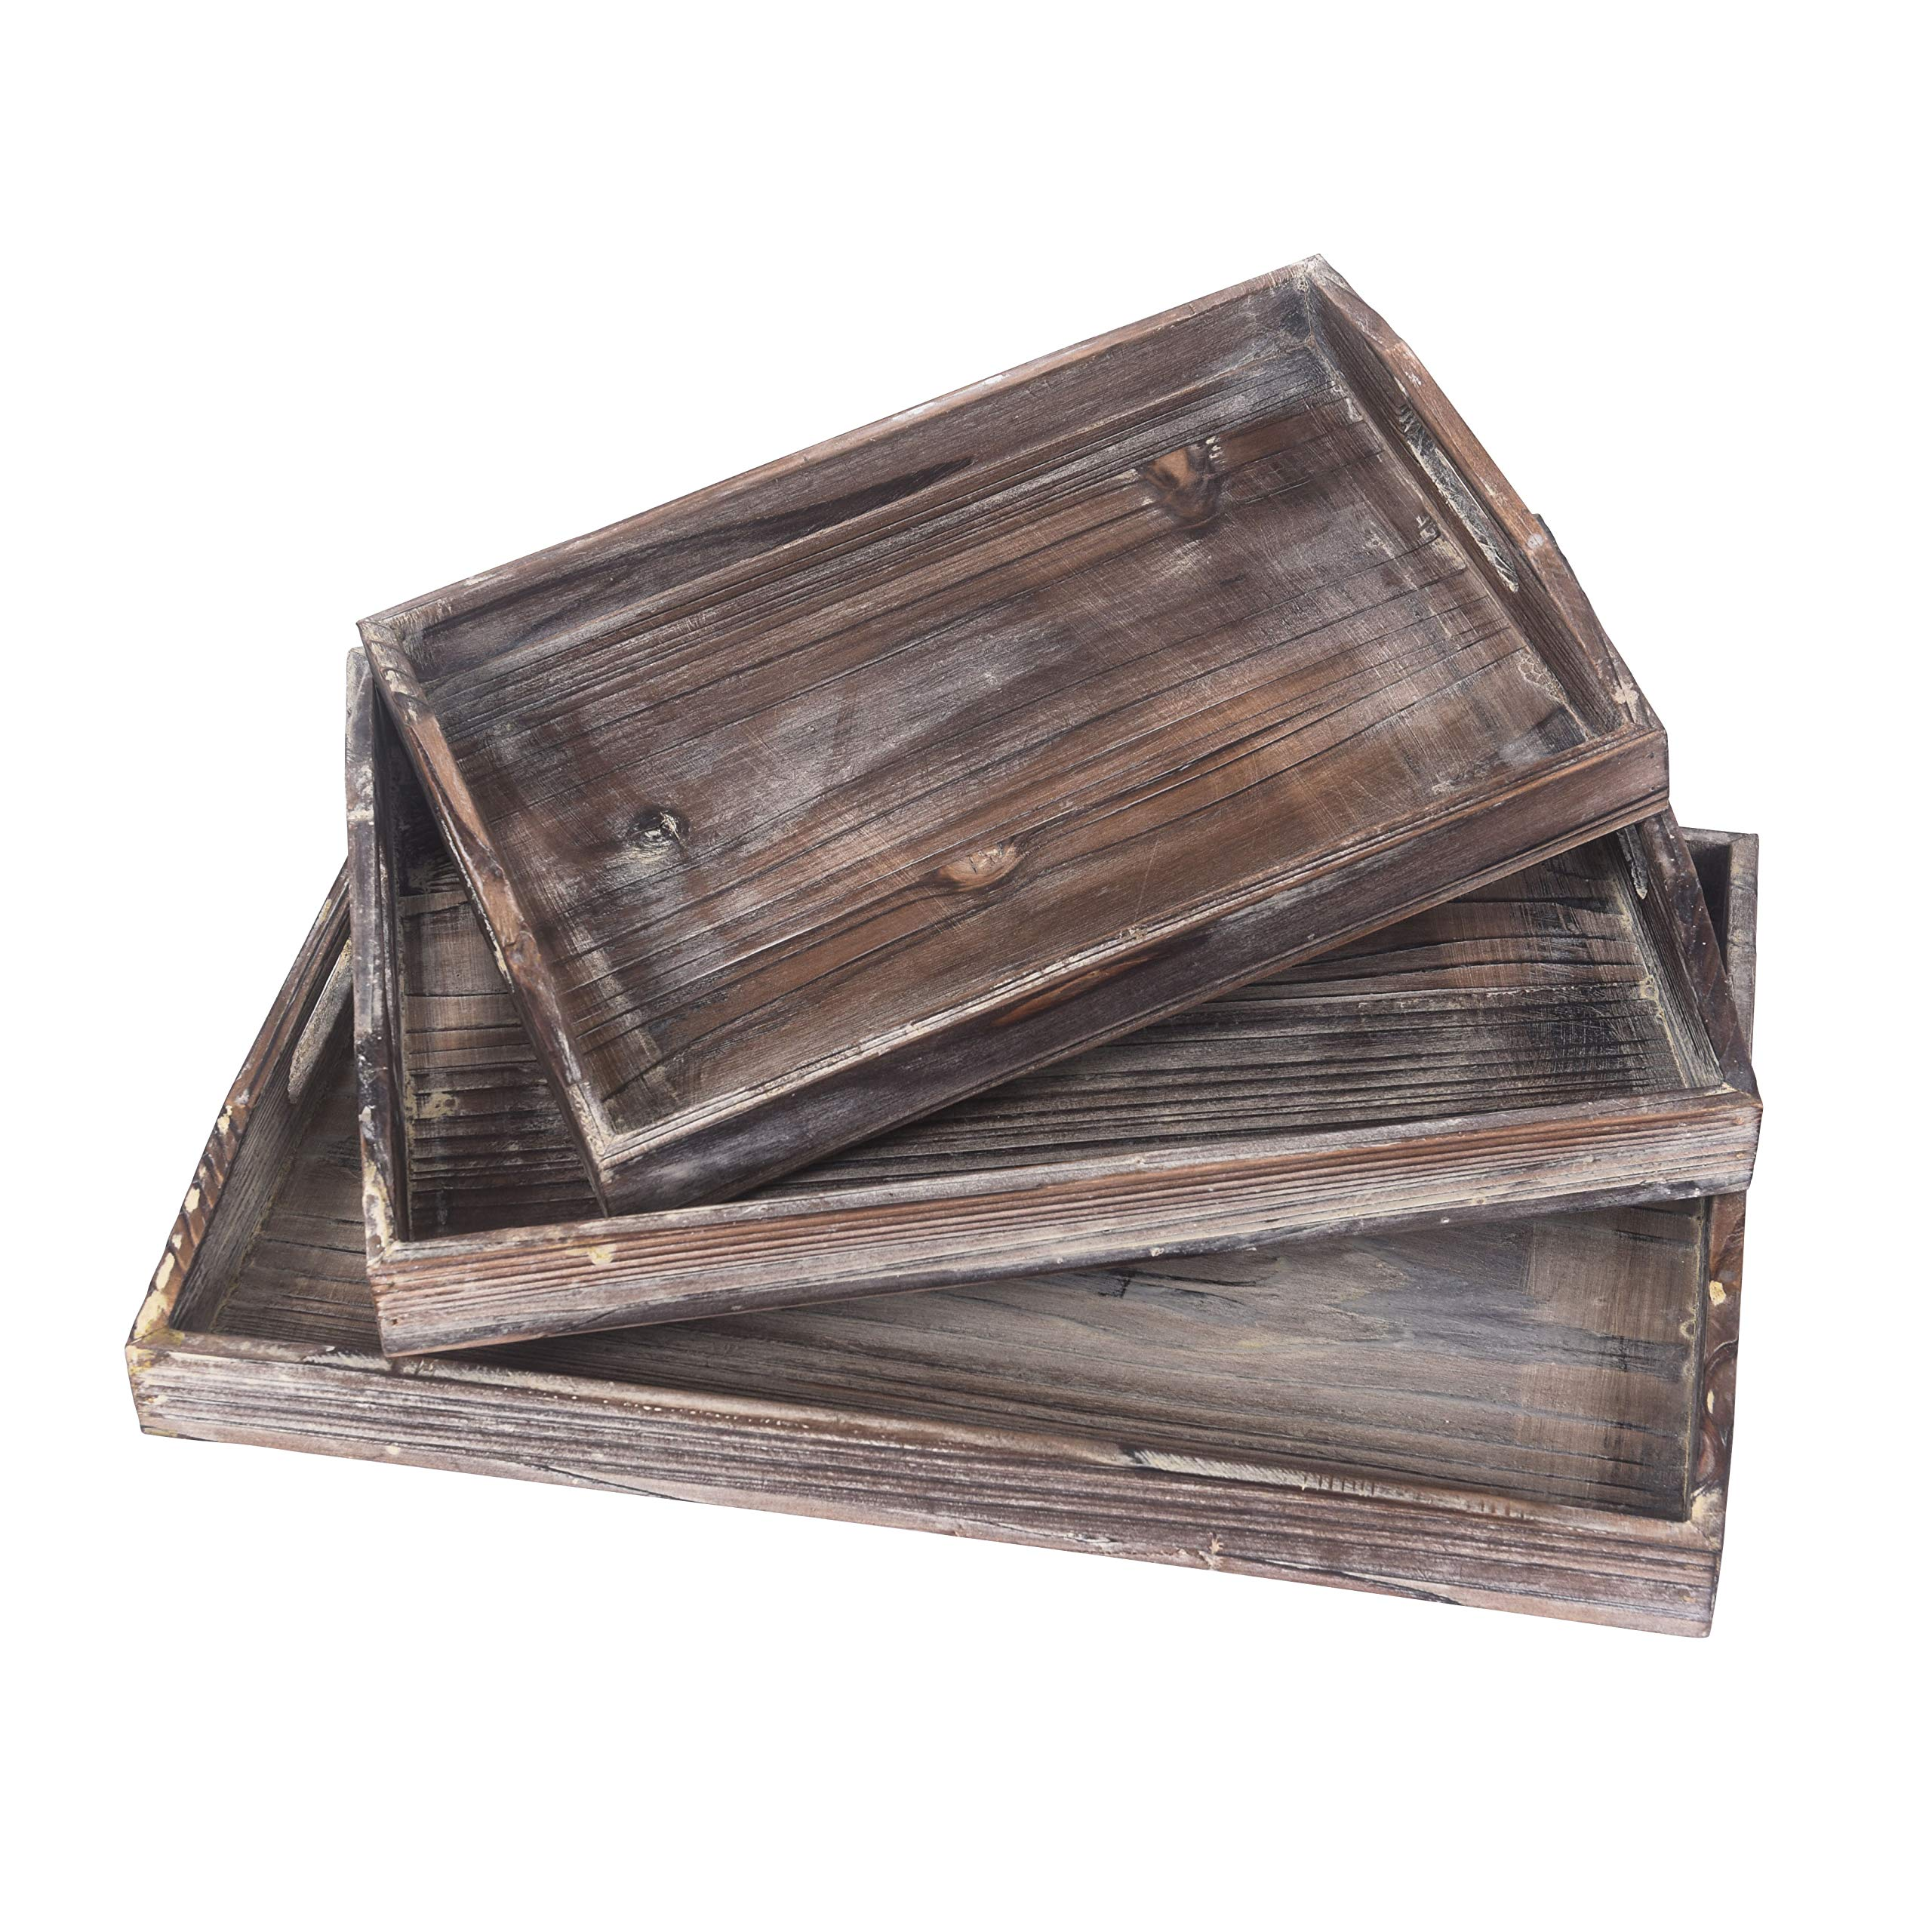 RHF Vintage Serving Tray,Rustic Wood Trays,Retro Tray Set,Nesting Serving Tray,Breakfast Trays,Ottoman Tray, Platter For Food Drink Eating Coffee, Brown, Set of 3